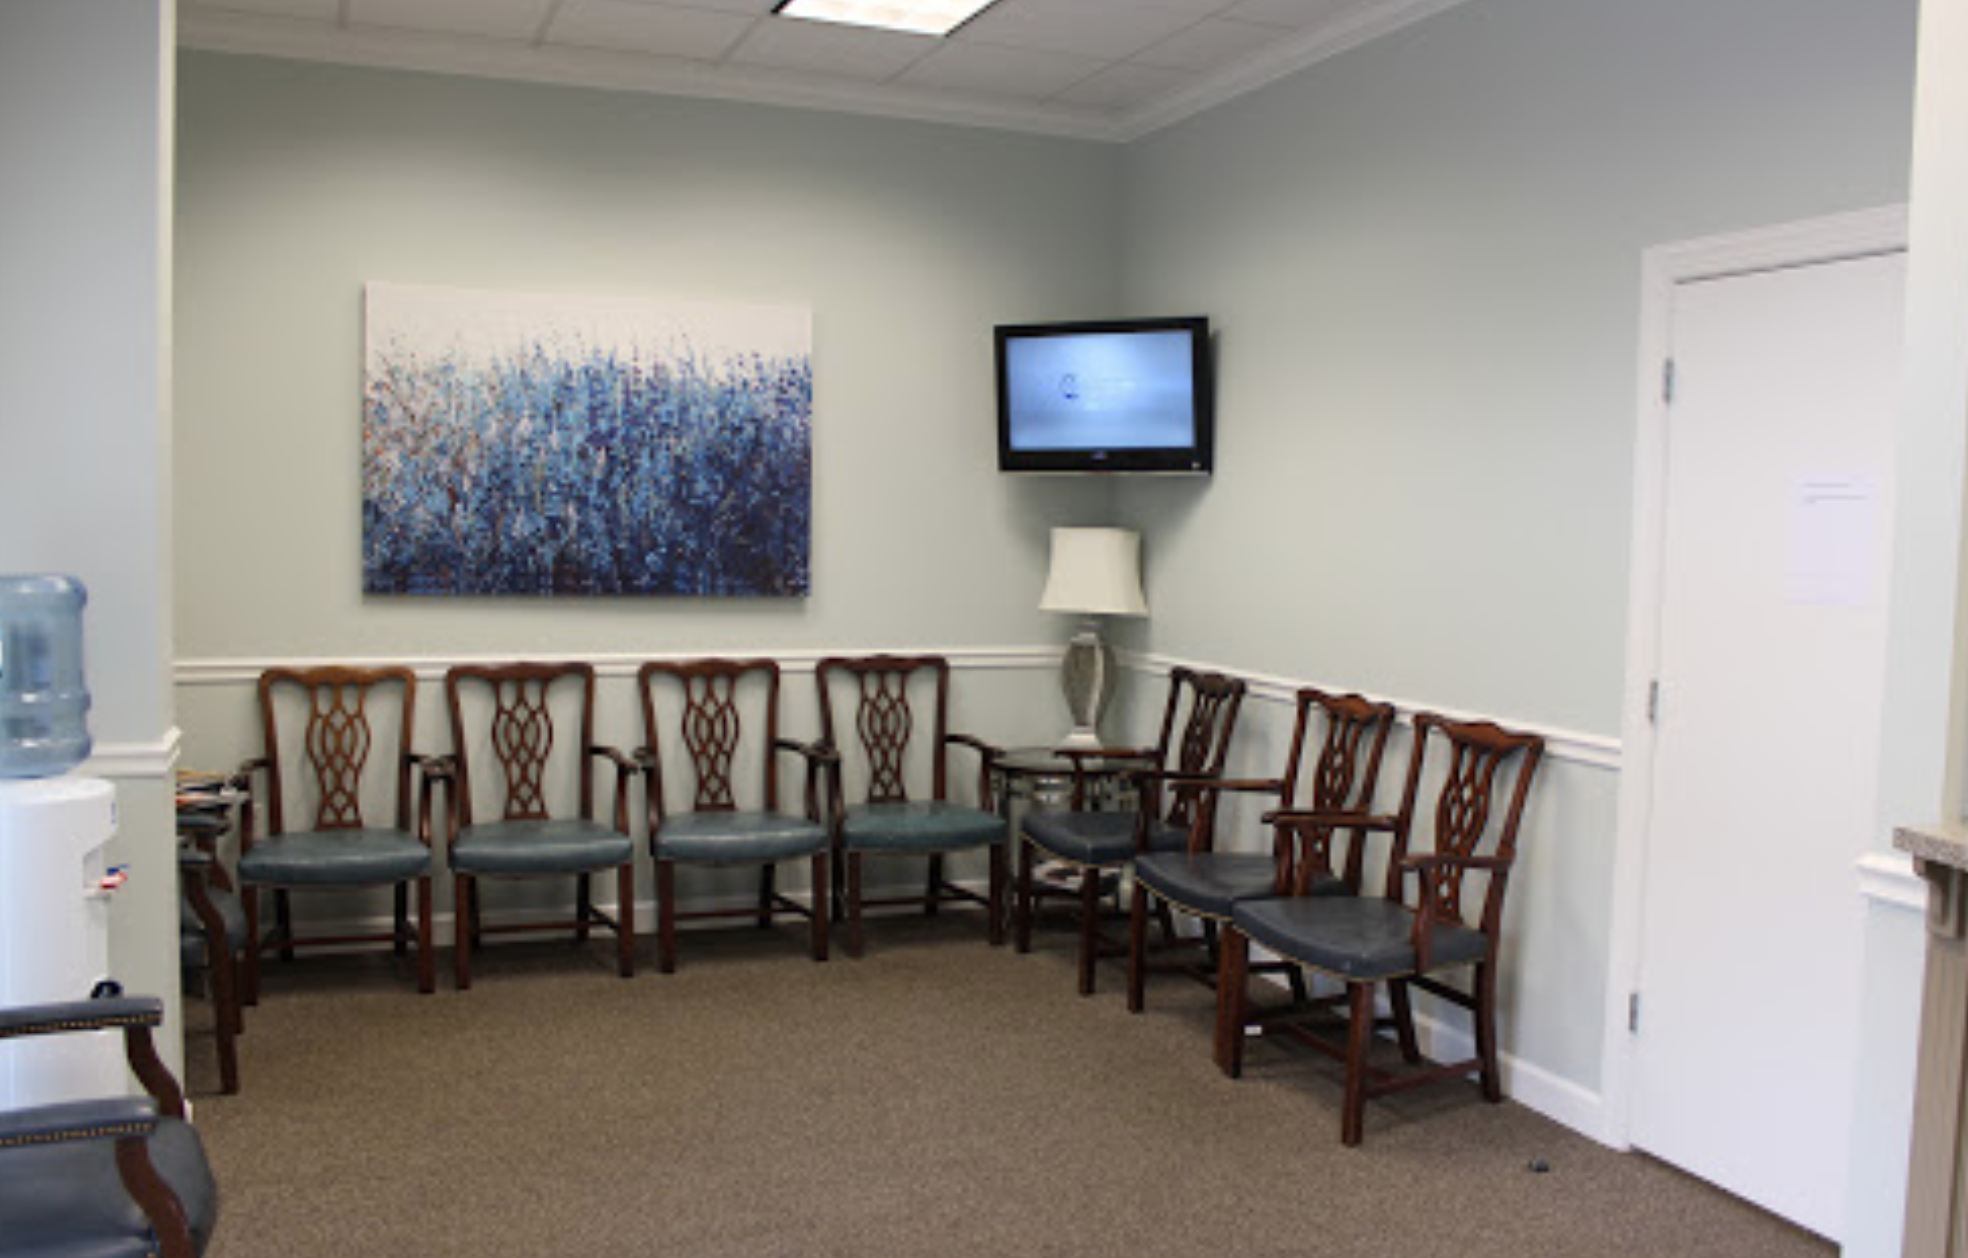 Family Practice & Screening Center image 2